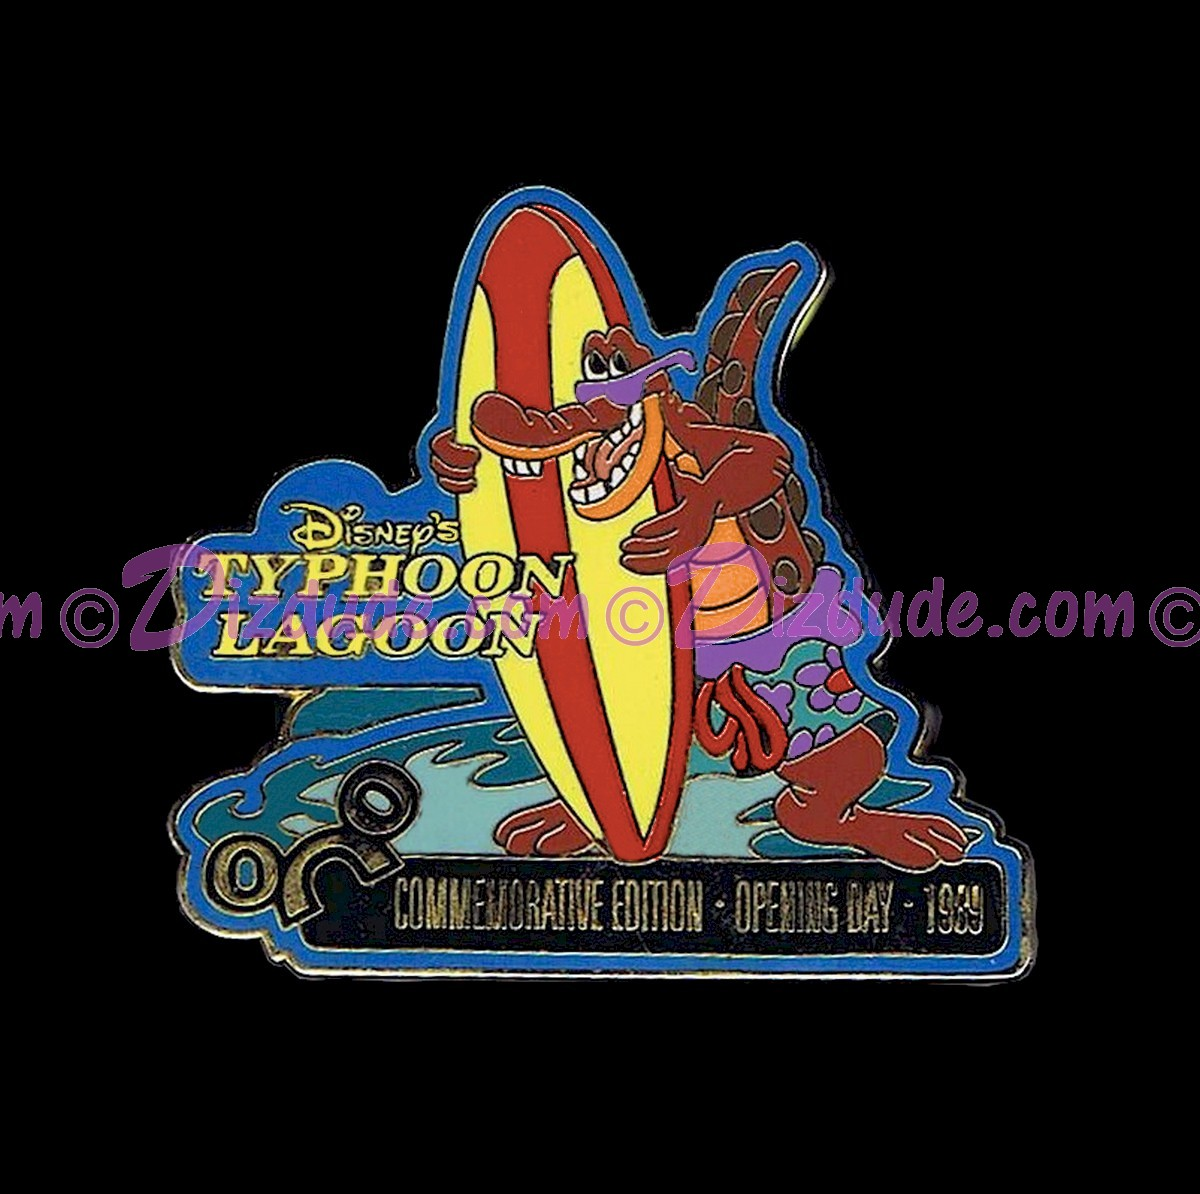 Walt Disney World June 2000 Pin of the Month - Typhoon Lagoon ©Dizdude.com